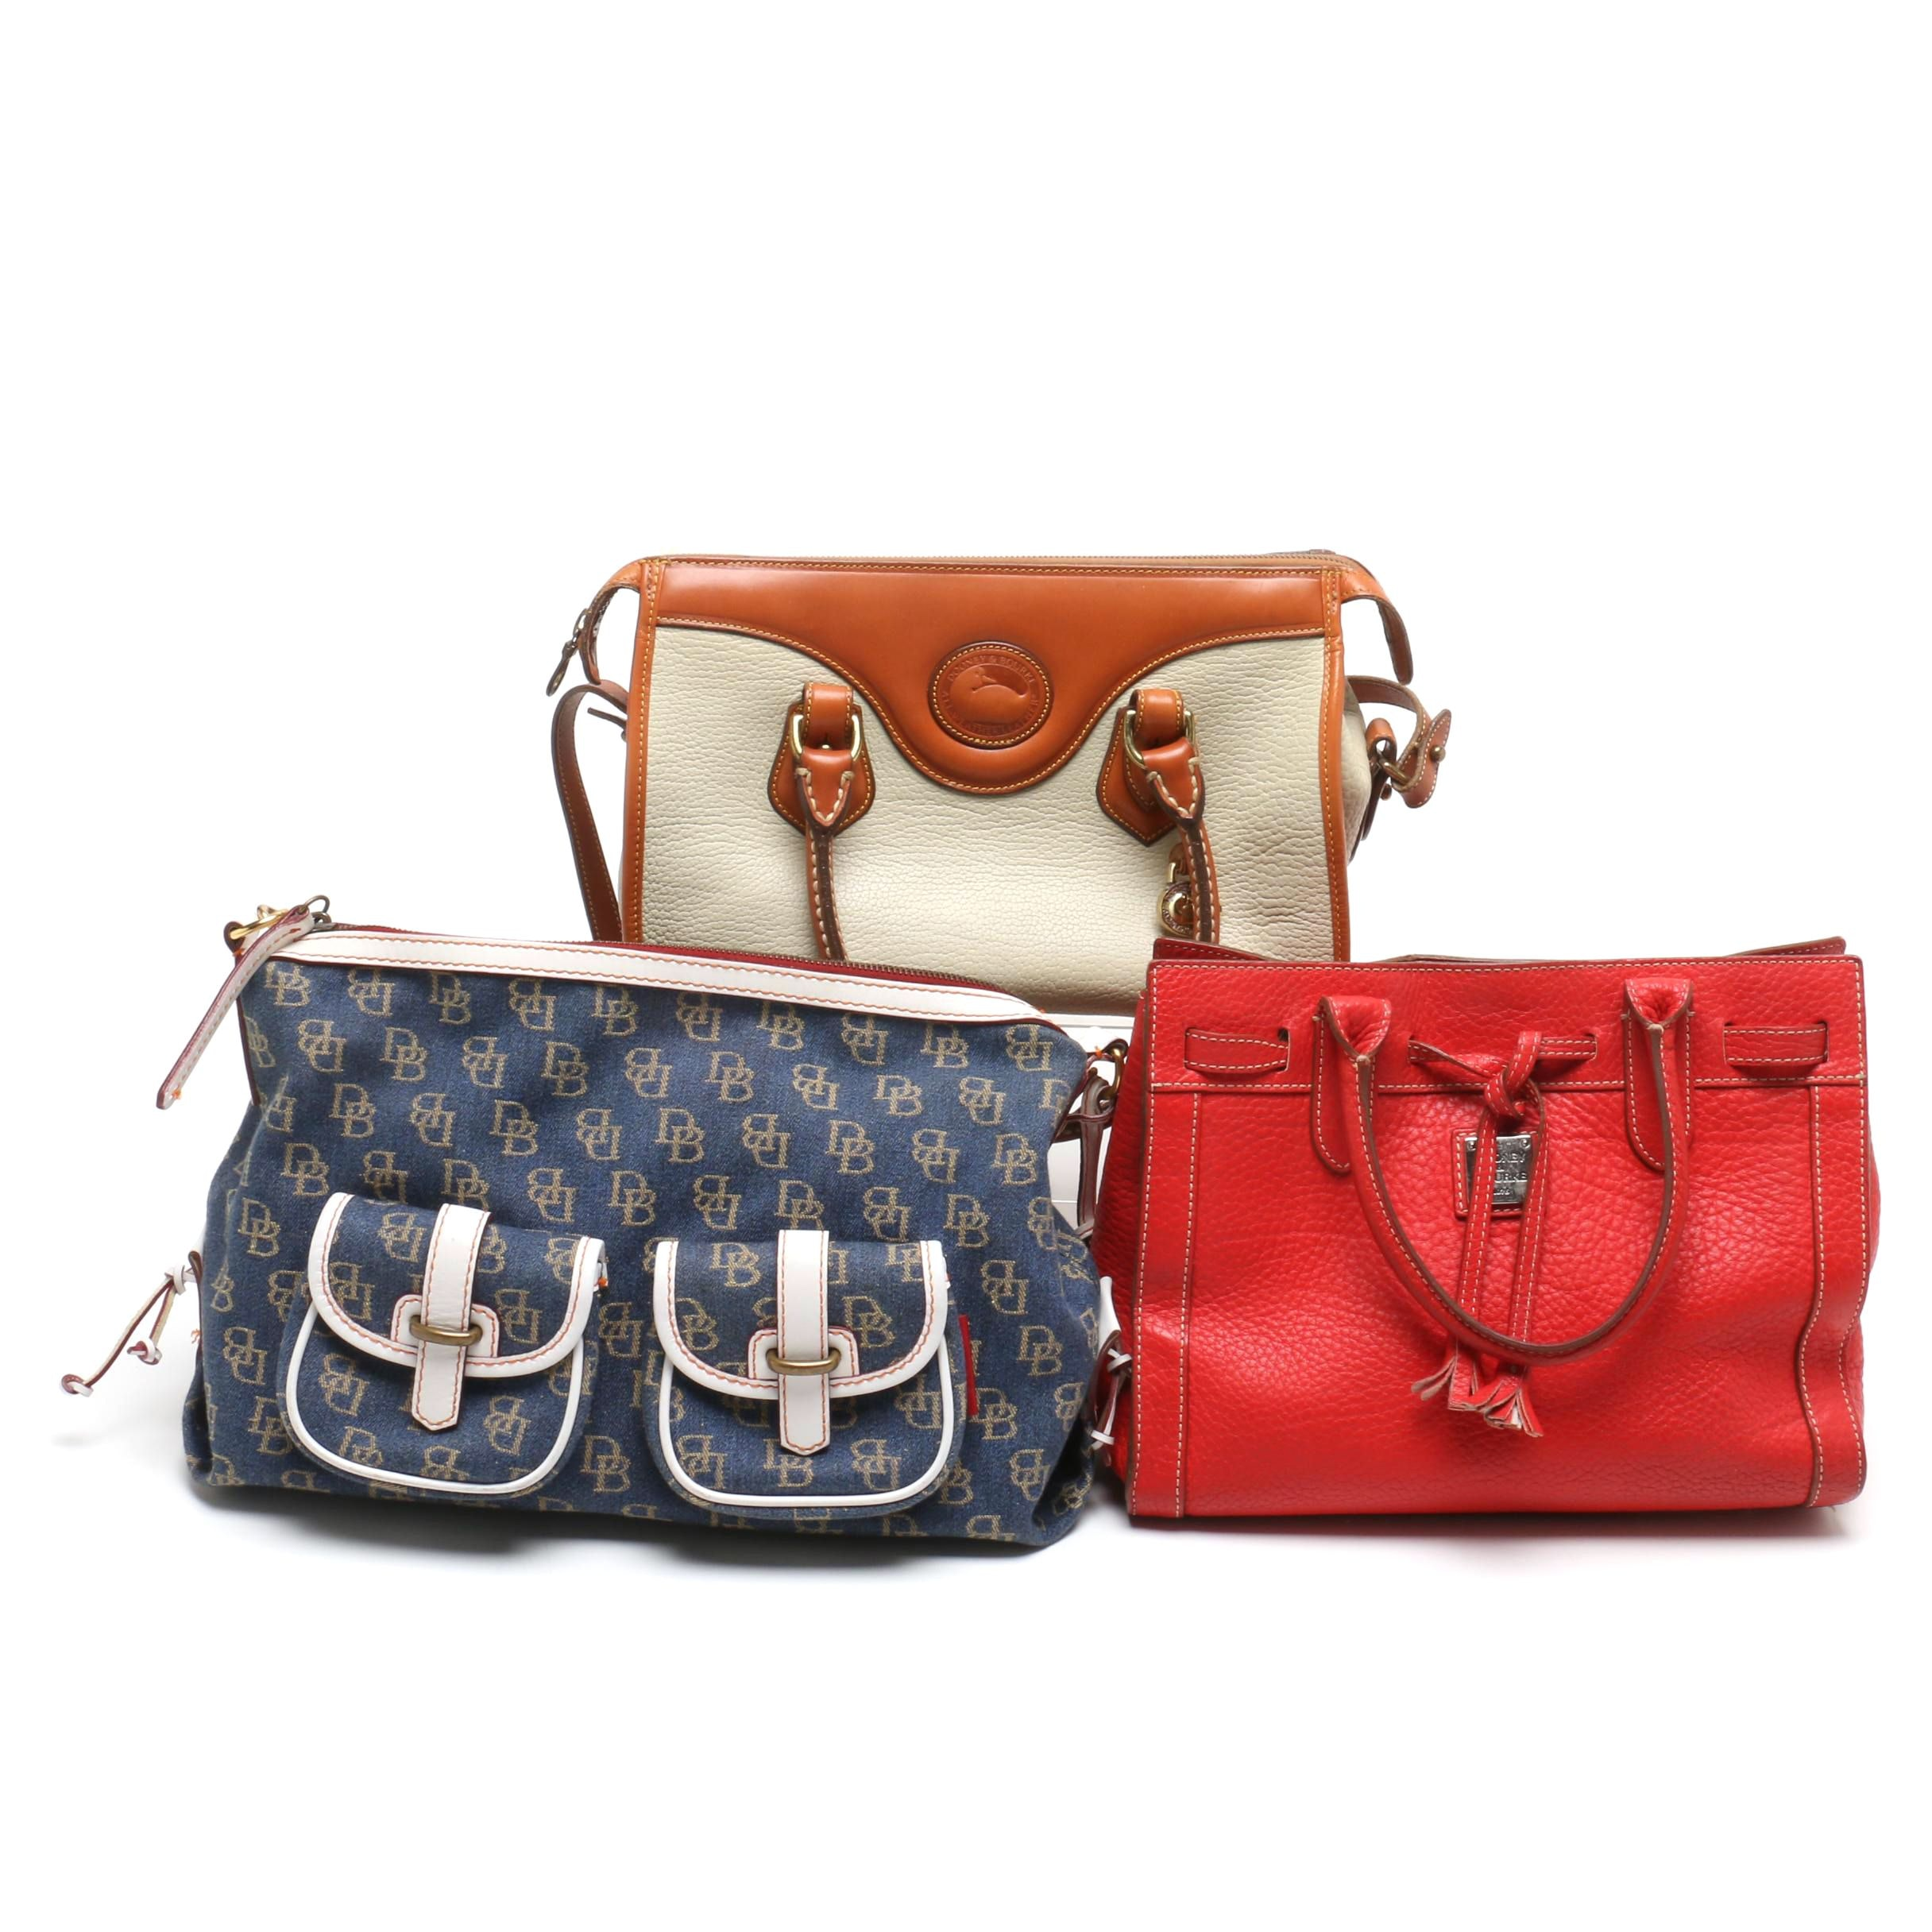 Dooney & Bourke Leather and Canvas and Leather Shoulder Bags